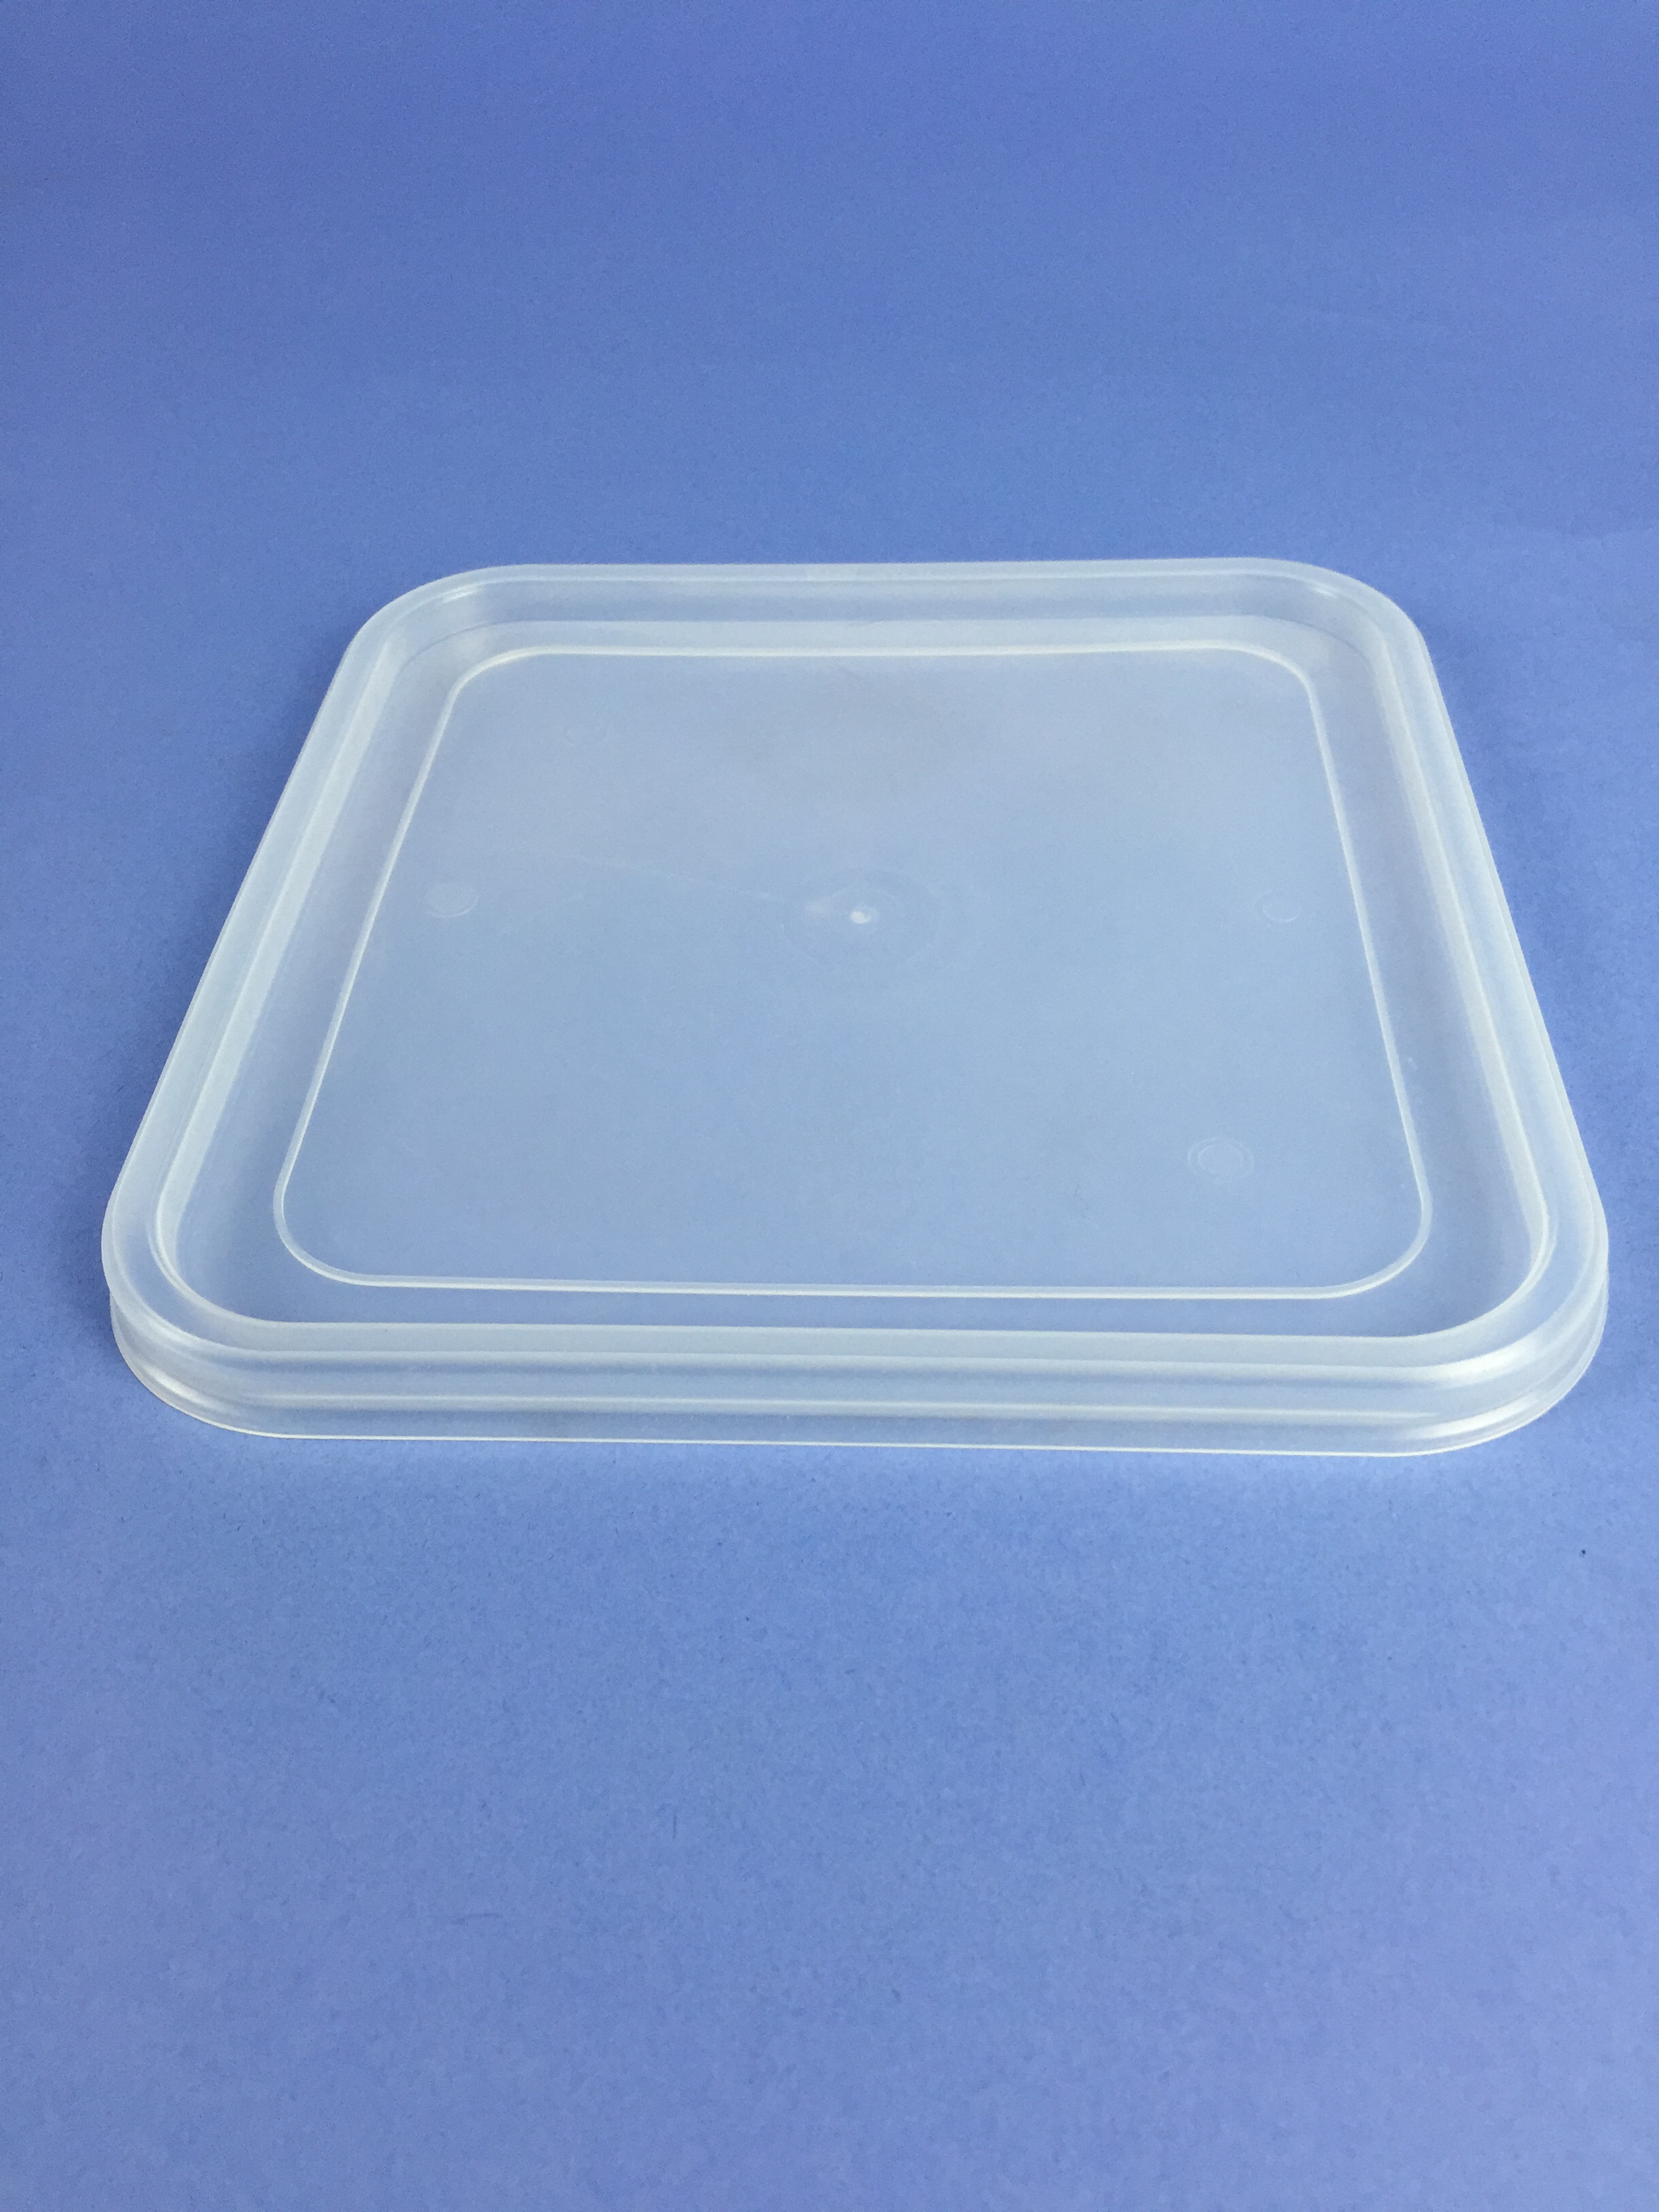 Pc2sq 2 Litre Square Ice Cream Container Bristol